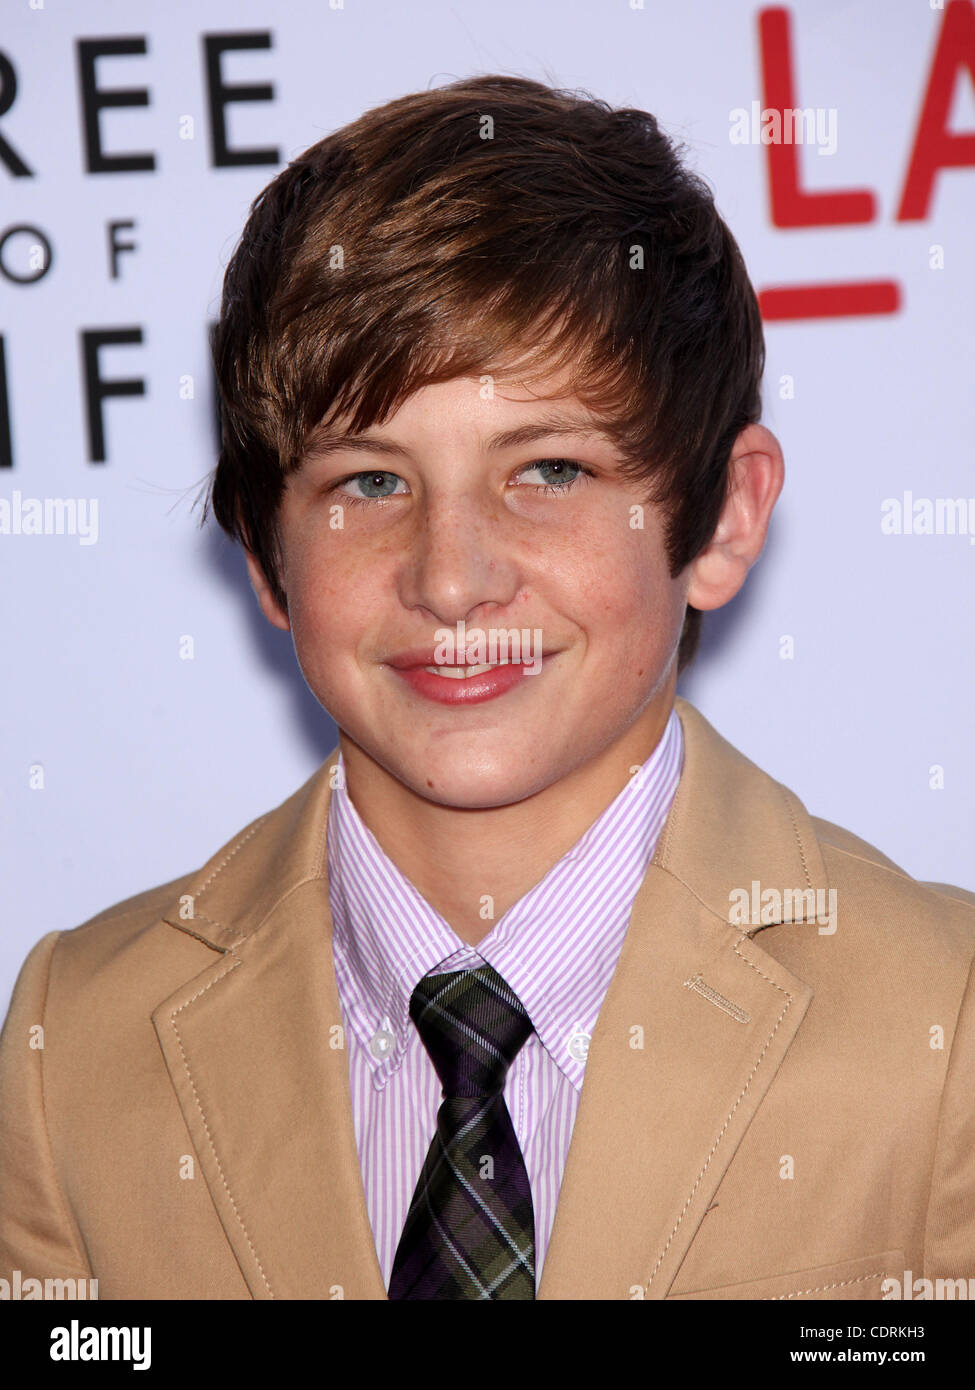 May 24, 2011 - Los Angeles, California, U.S. - LARAMIE EPPLER arrives for the premiere of the film 'Tree Of - Stock Image